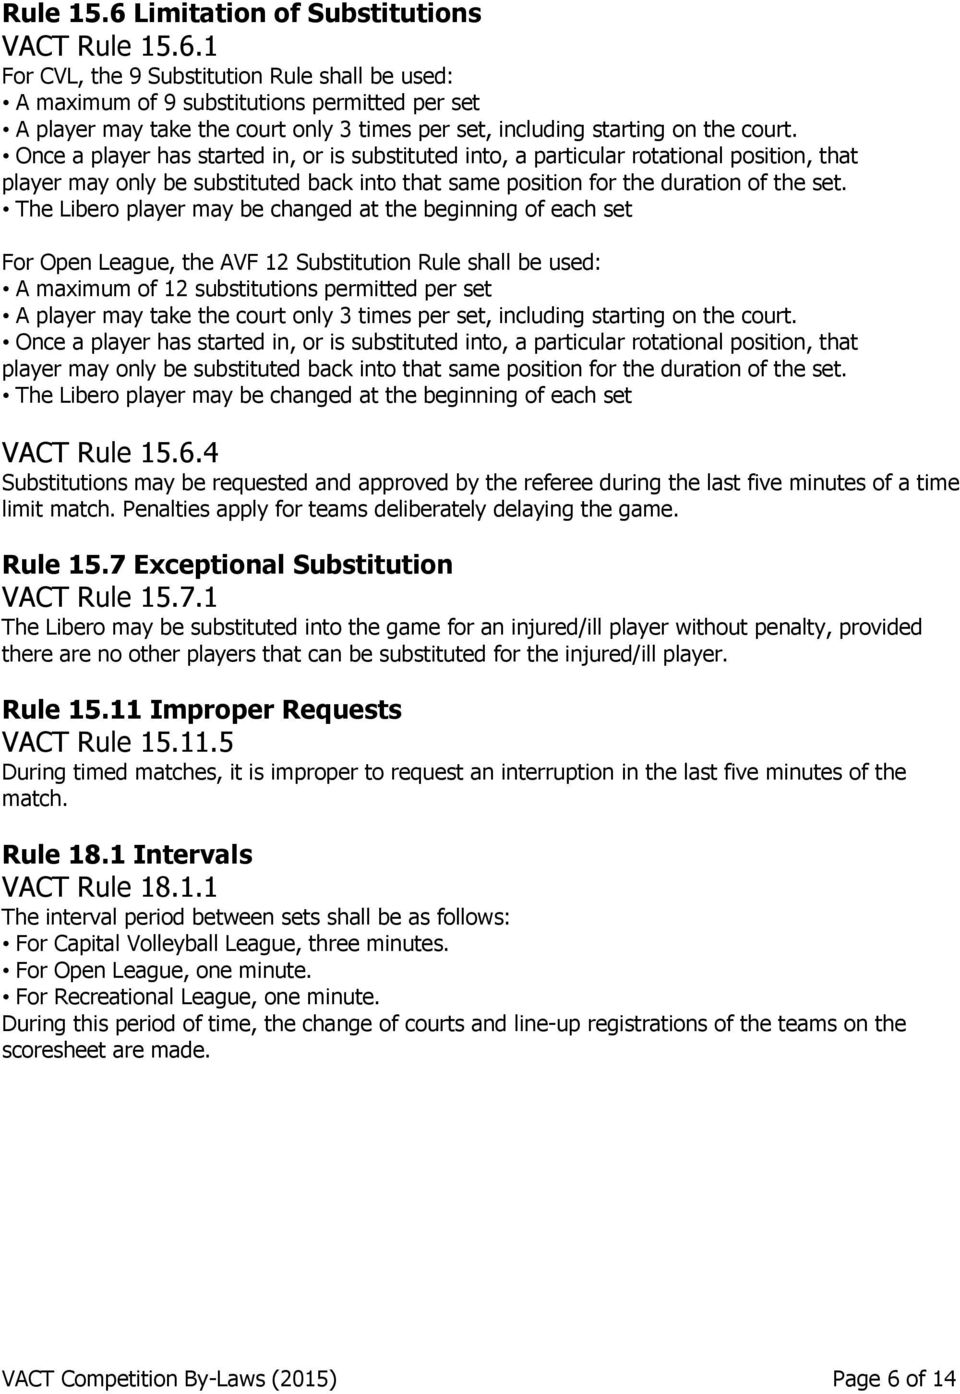 The Libero player may be changed at the beginning of each set For Open League, the AVF 12 Substitution Rule shall be used: A maximum of 12 substitutions permitted per set A player may take the court